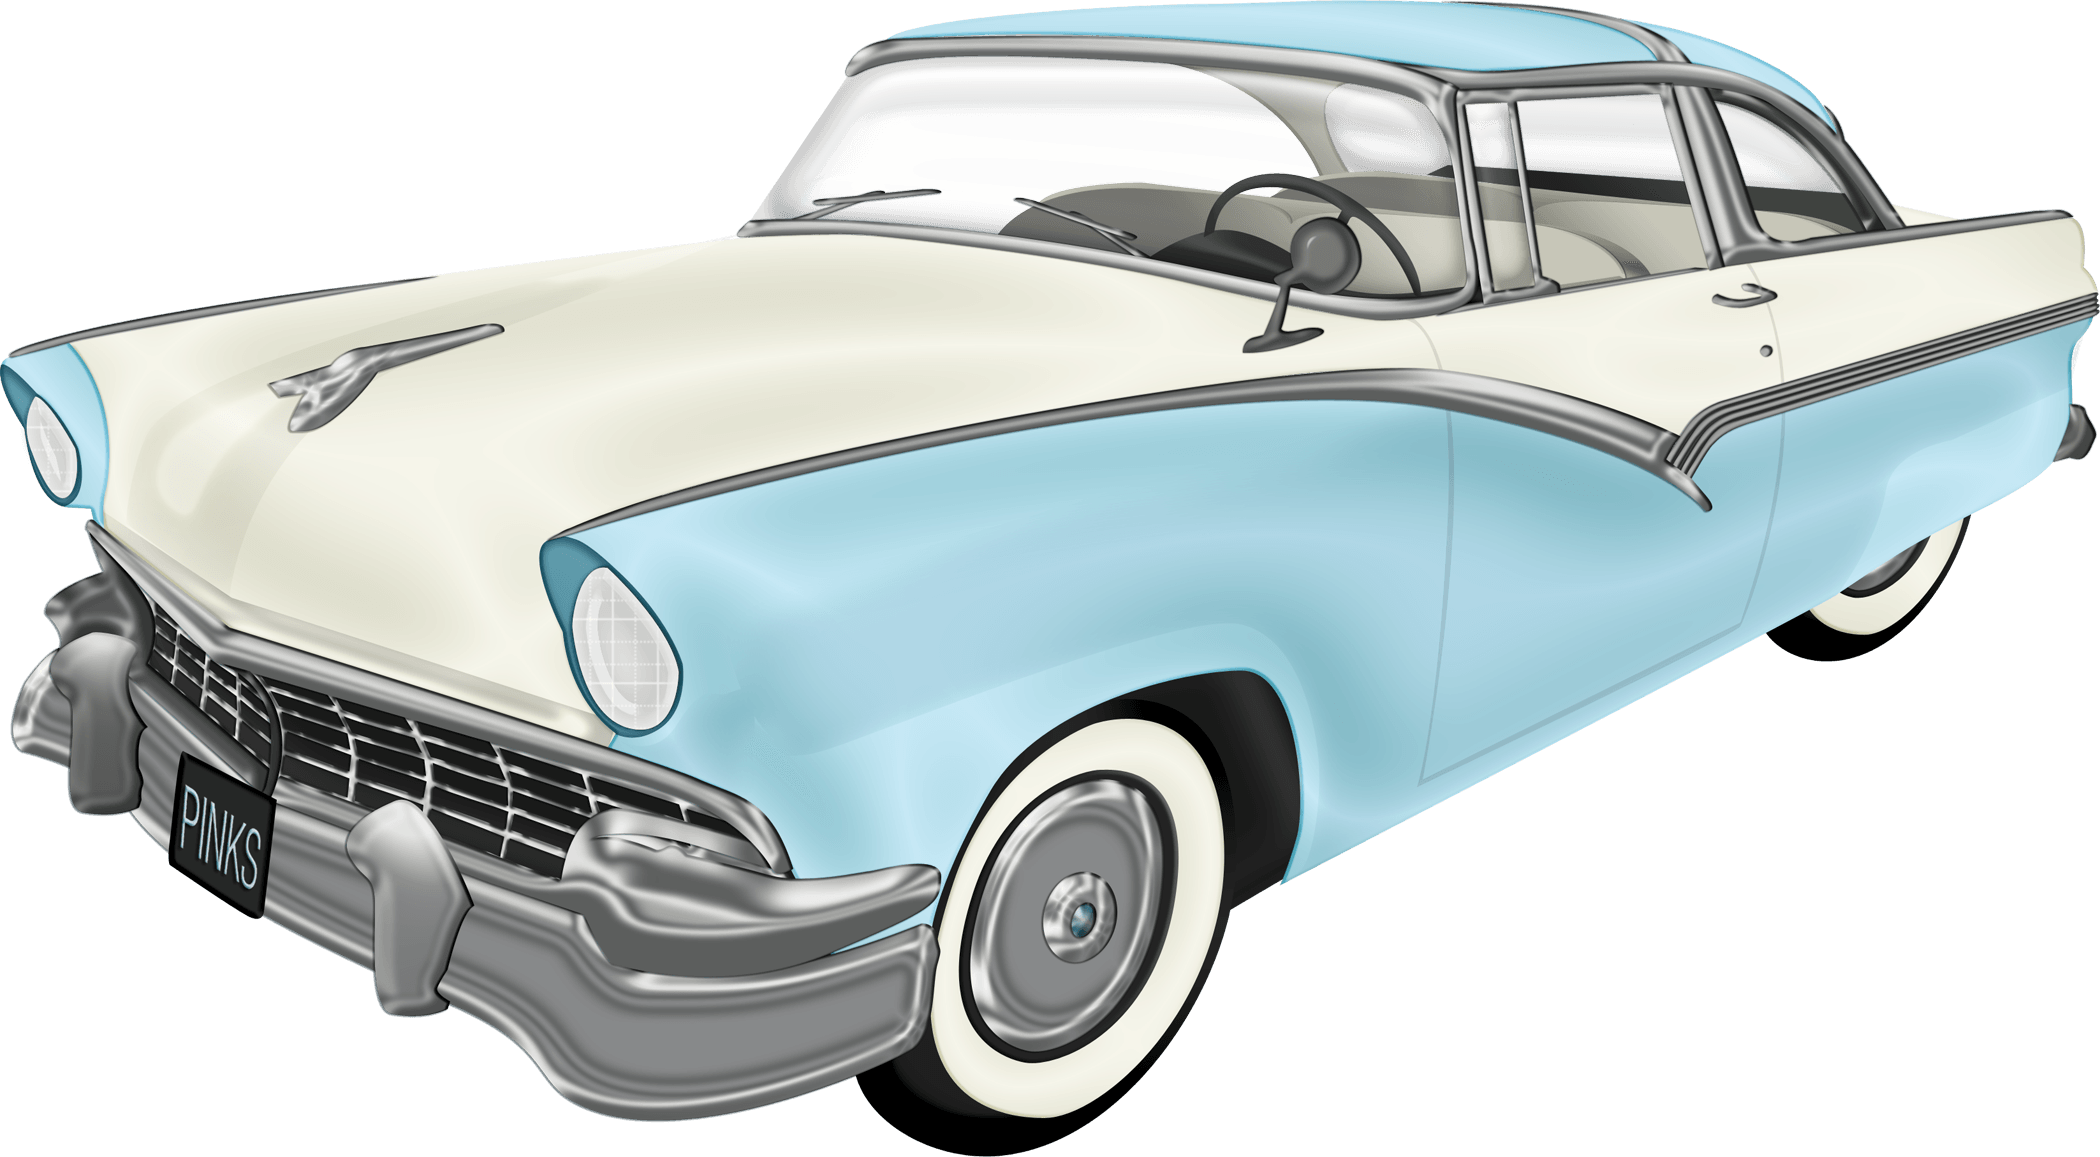 antique car png hd transparent antique car hd png images Hot Rod Cartoons Clip Art Hot Rod Cartoons Drawings